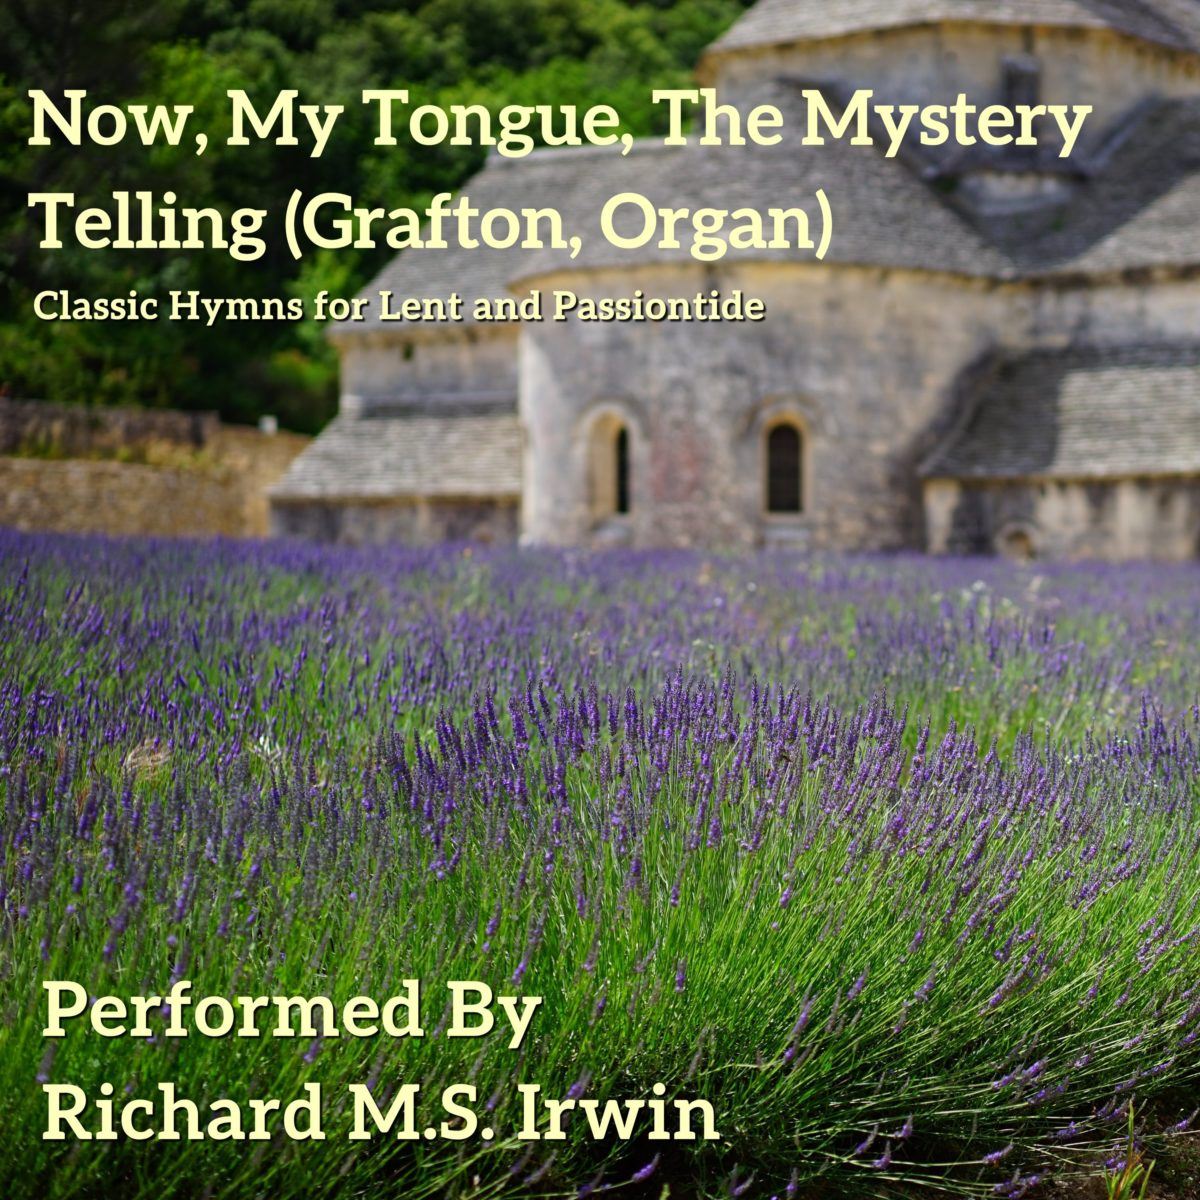 Now My Tongue, The Mystery Telling (Grafton, Organ, 6 Verses)